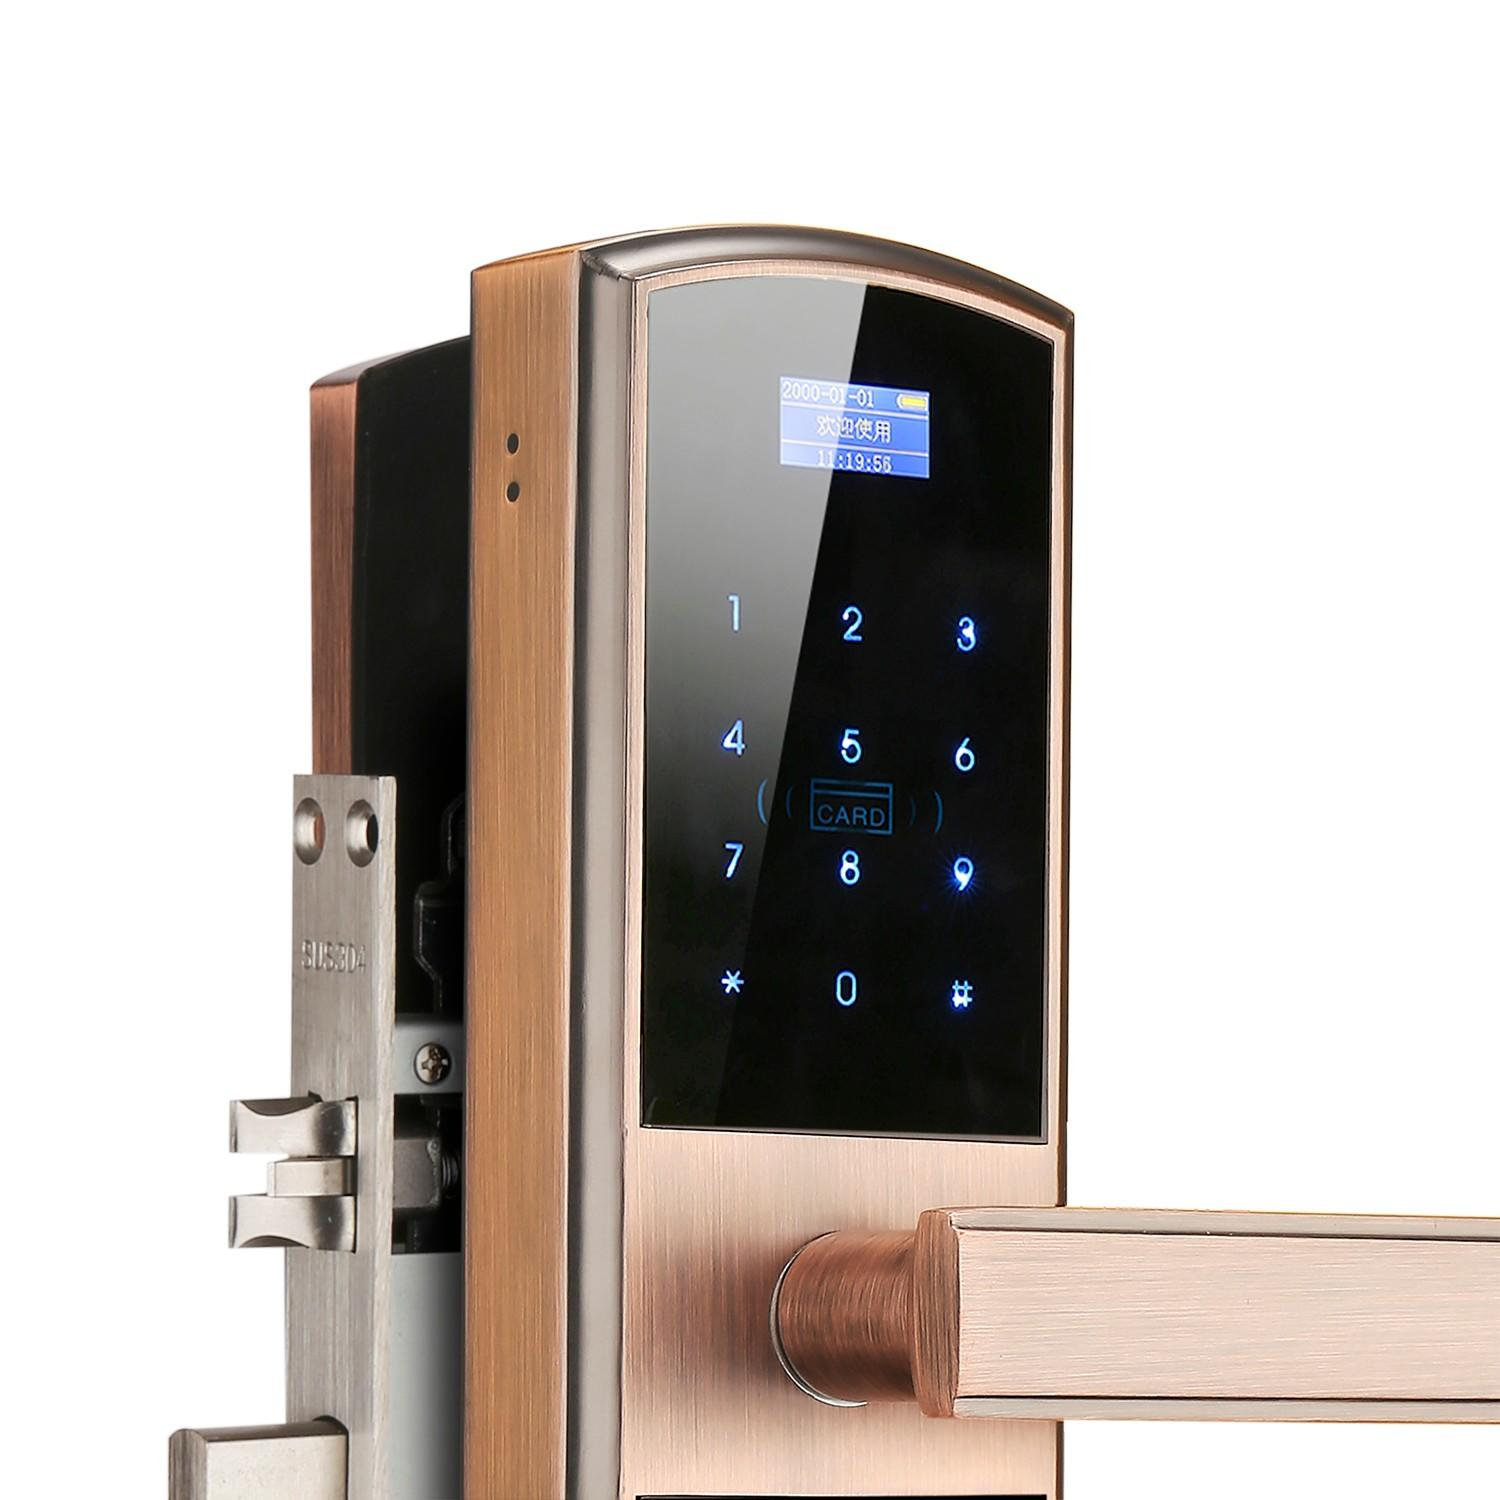 Eversunny locks fingerprint door lock price good quality for cottage-2